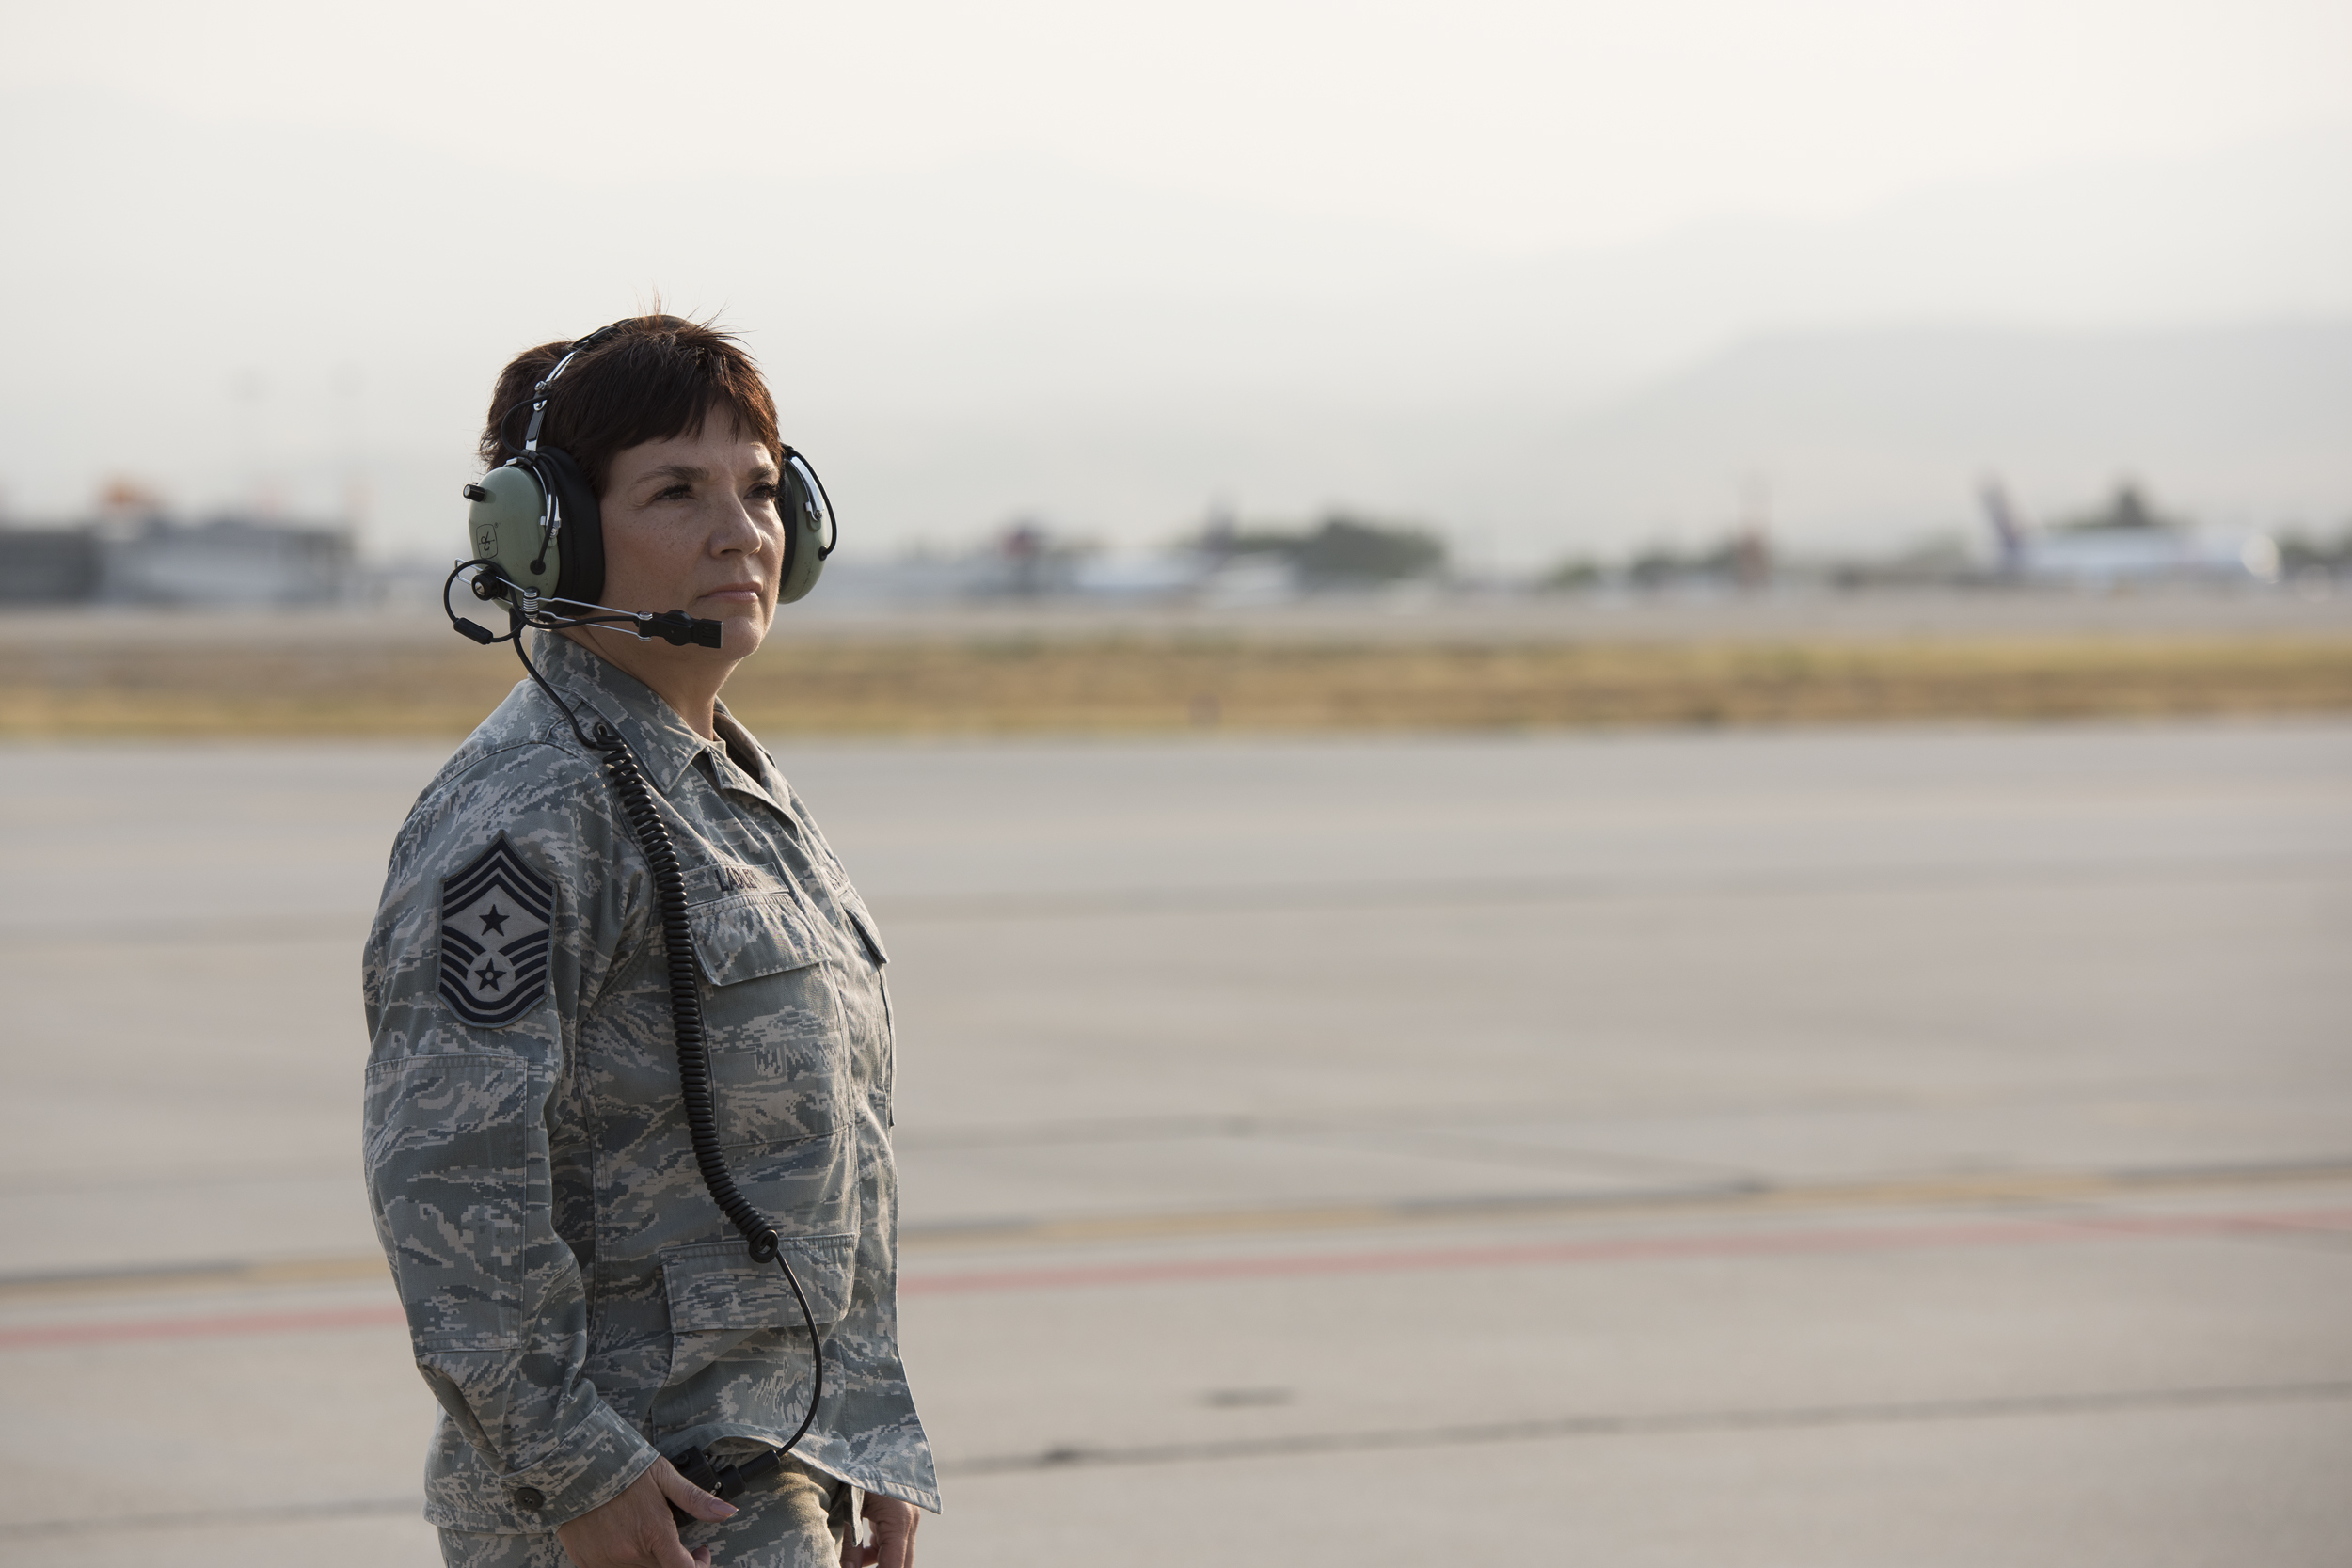 124th Fighter Wing Command Chief Master Sgt. Tammy Ladley Sends Off A-10